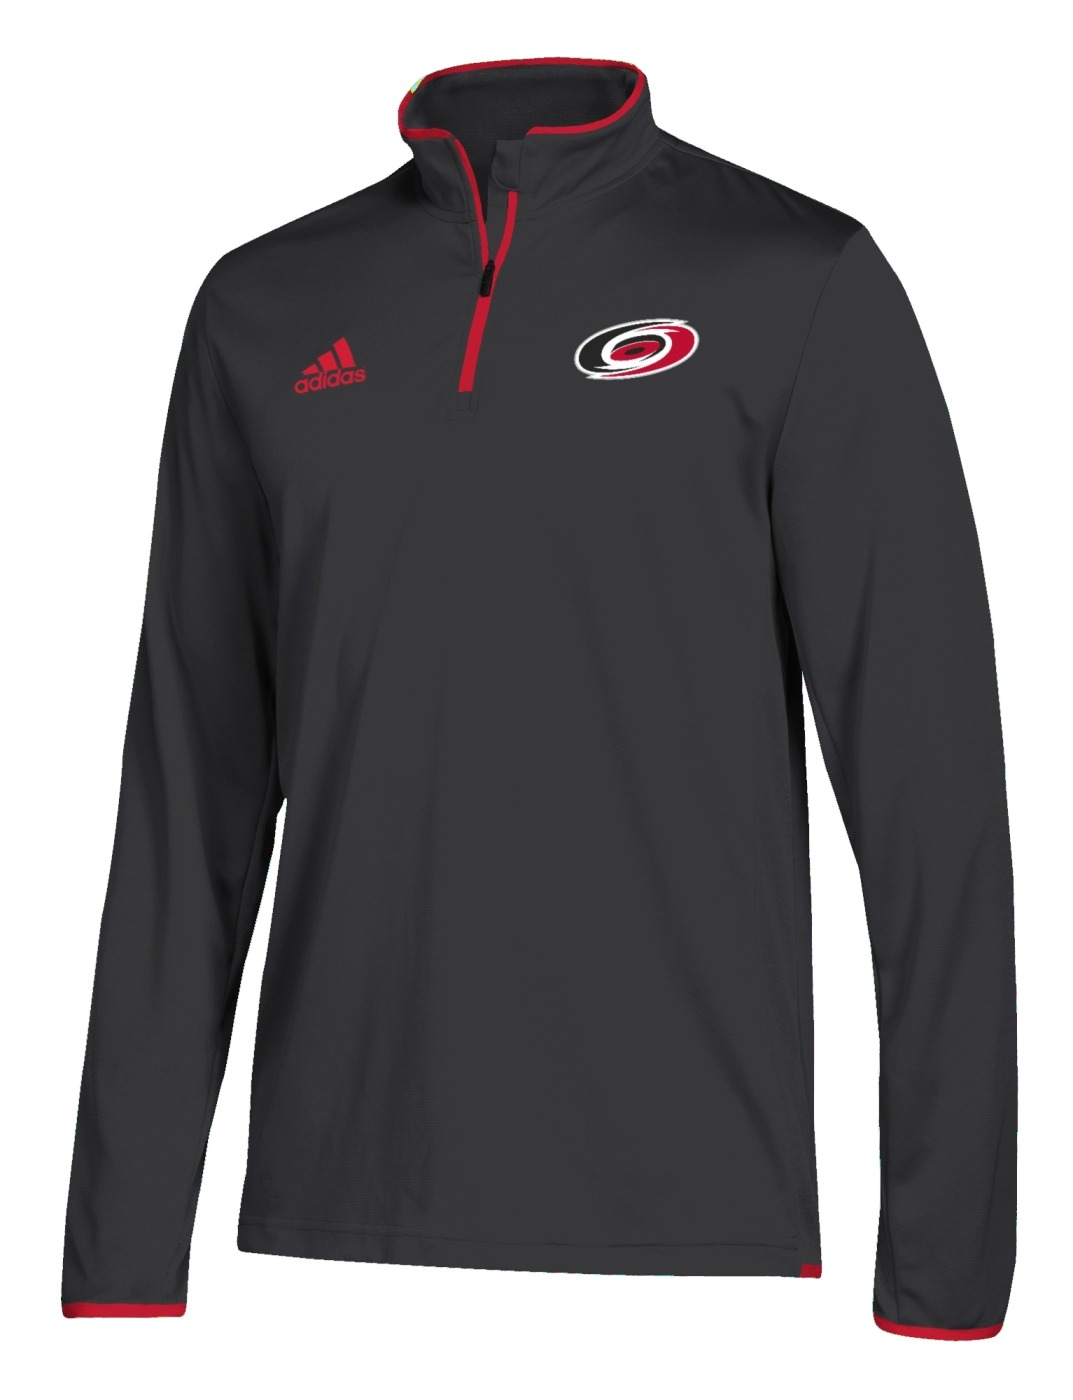 Carolina Hurricanes Adidas NHL Men's 2018 Authentic Pro 1/4 Zip Wind Shirt